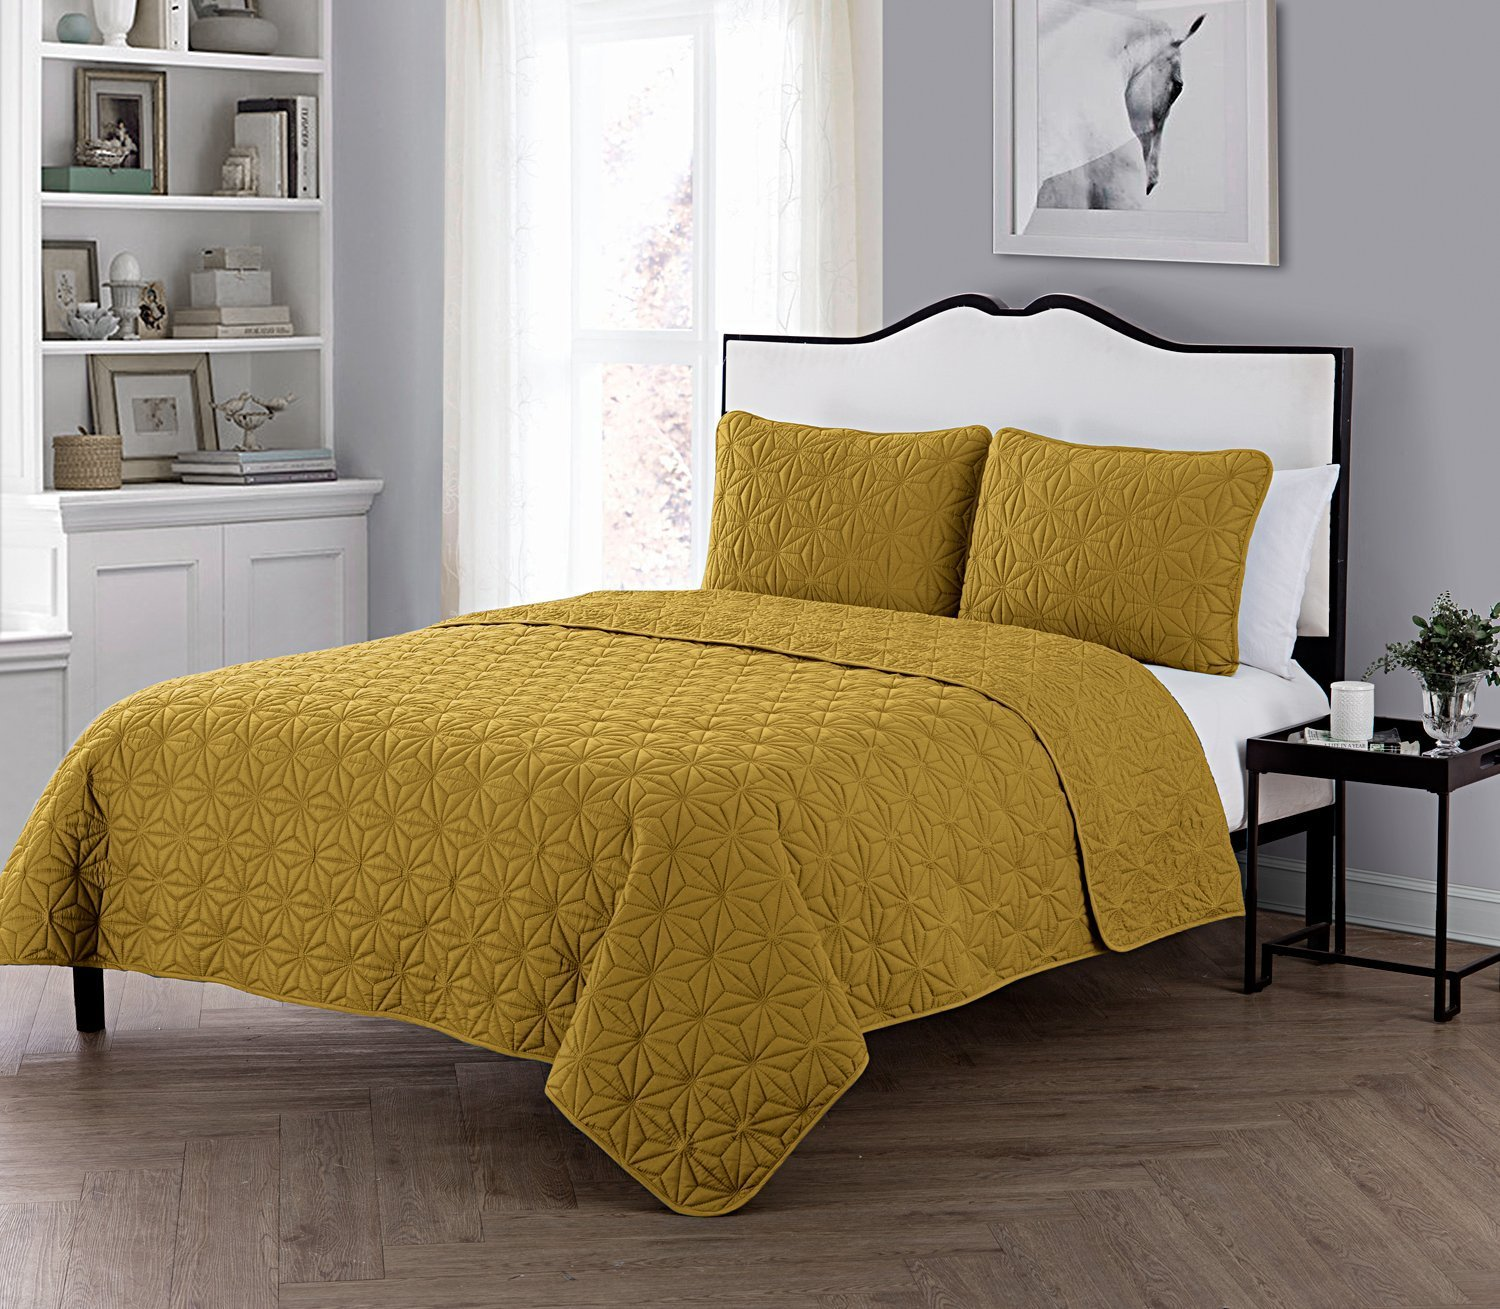 VCNY Home King Size Quilt Set in Gold Eye-popping Geometric Pattern Beautiful Blanket 3 Pc Set w/2 Shams